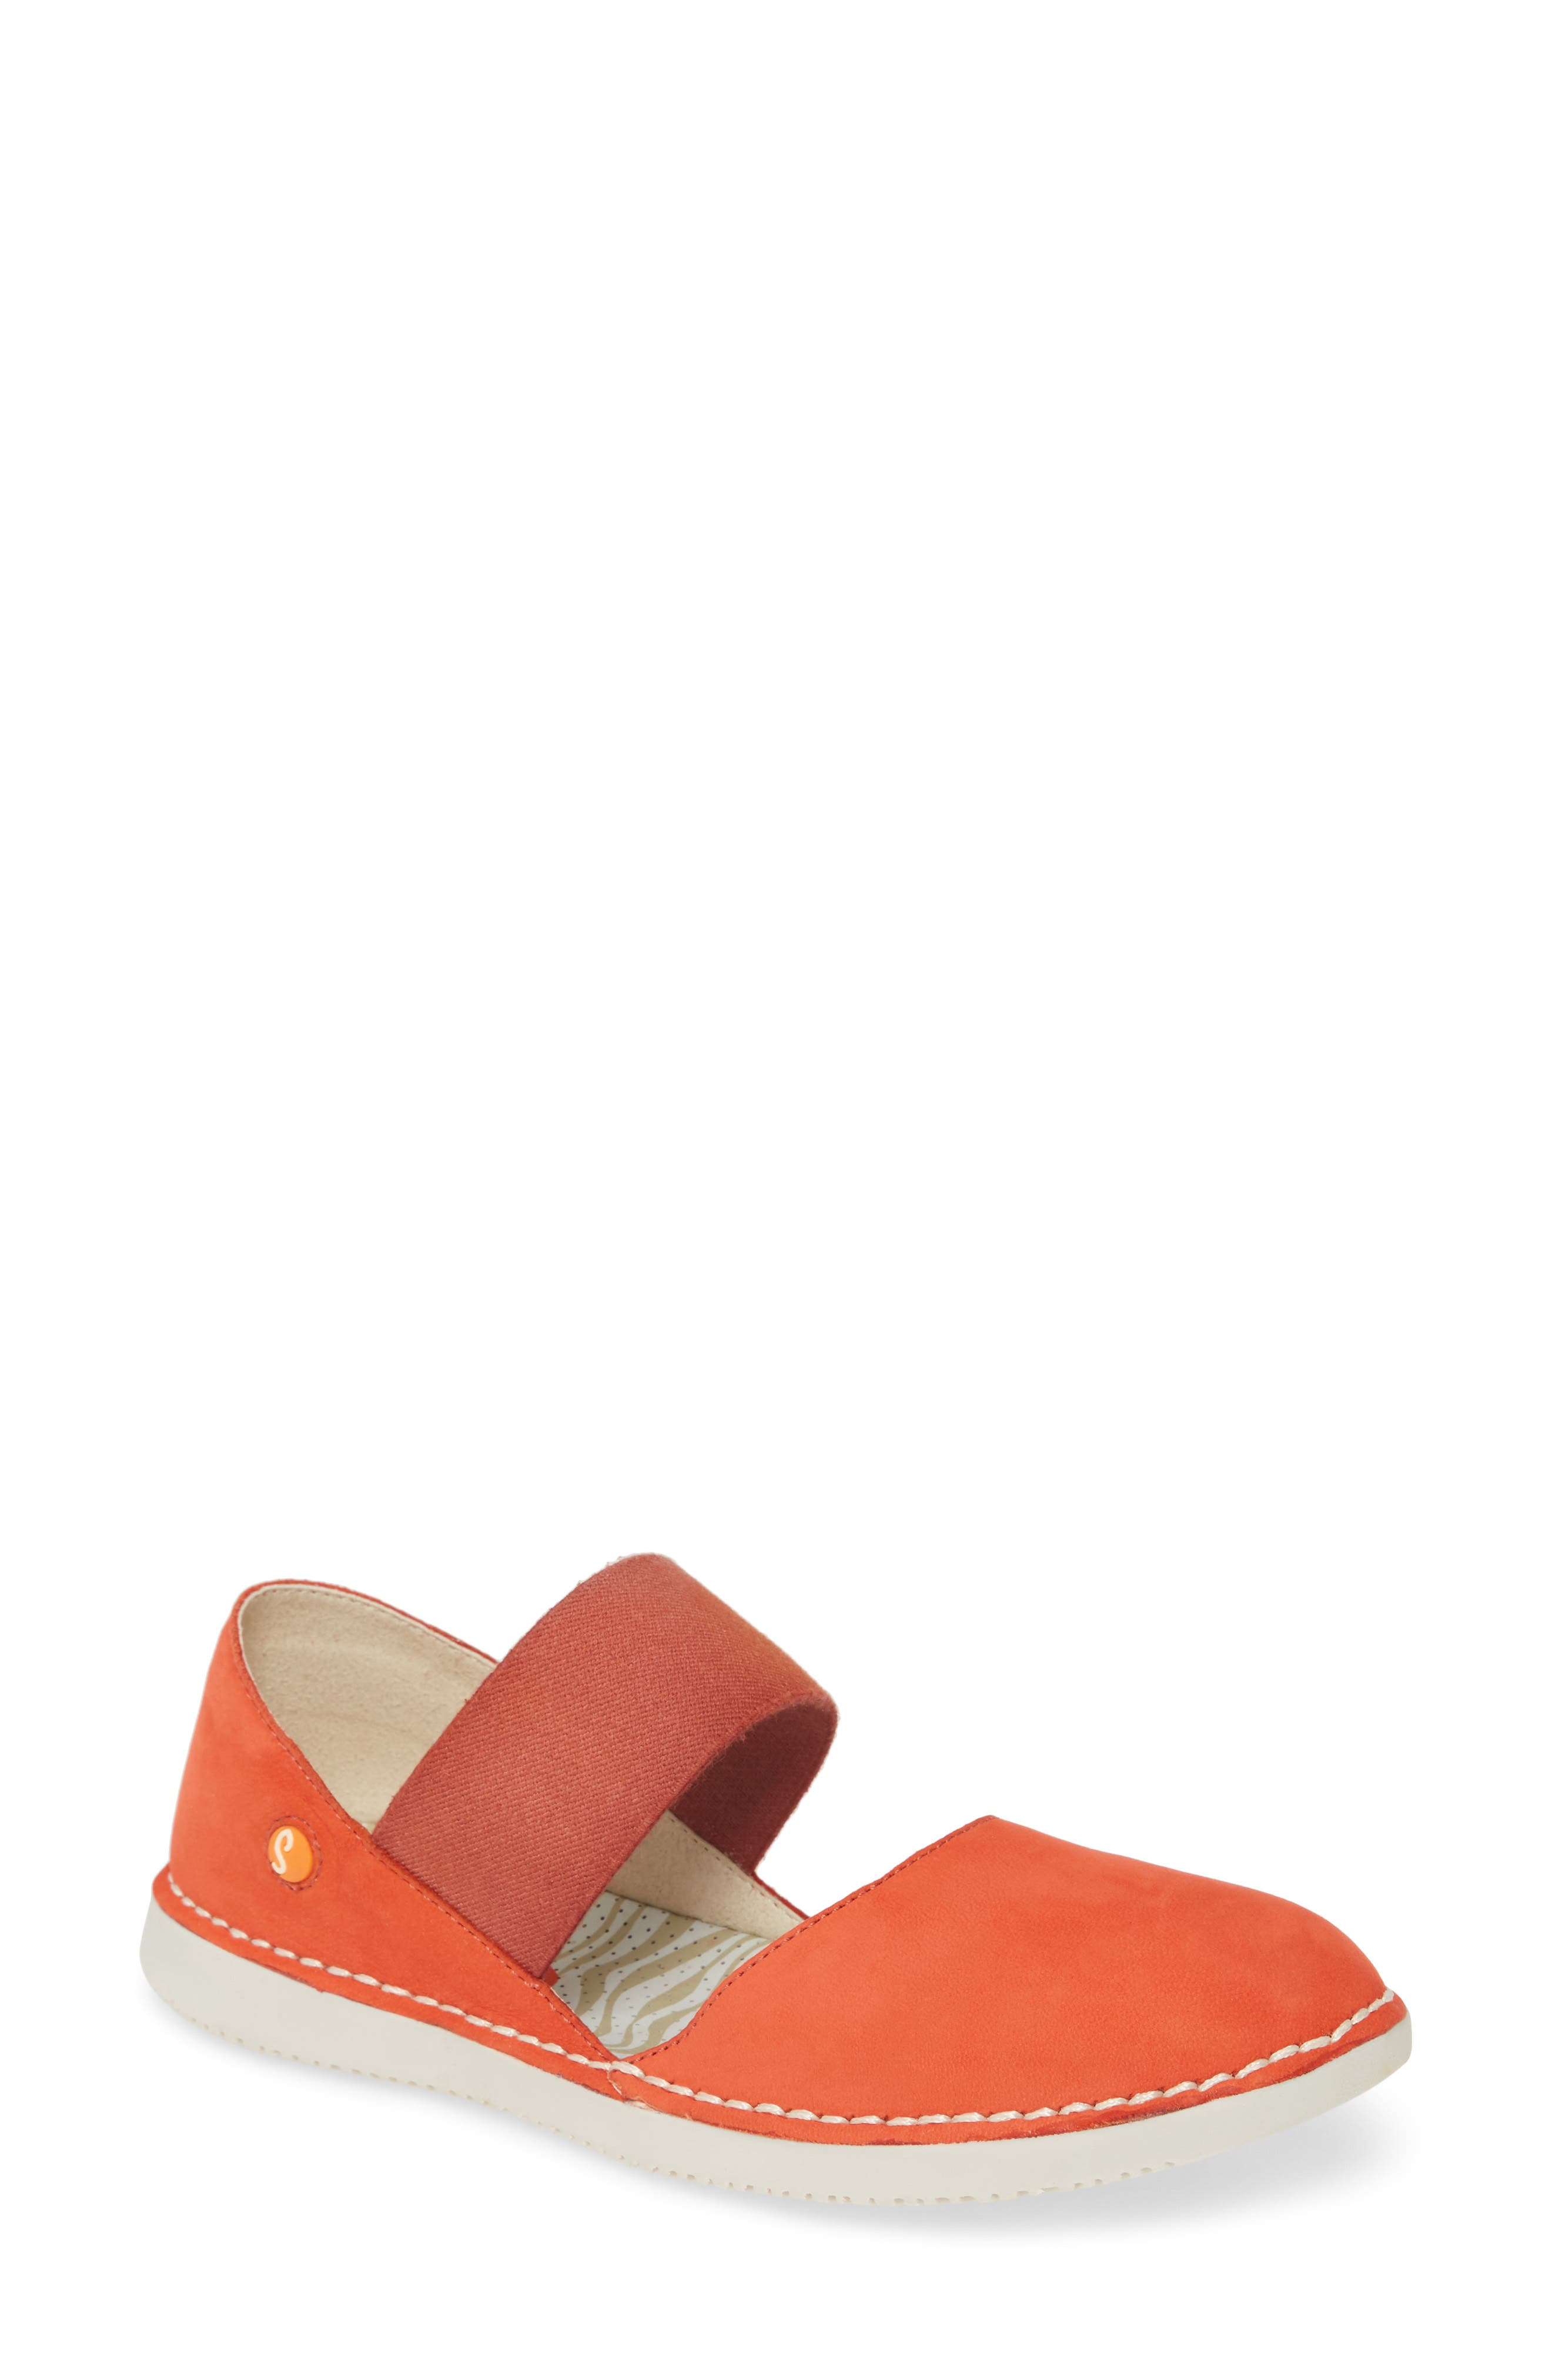 Softinos by Fly London All Women